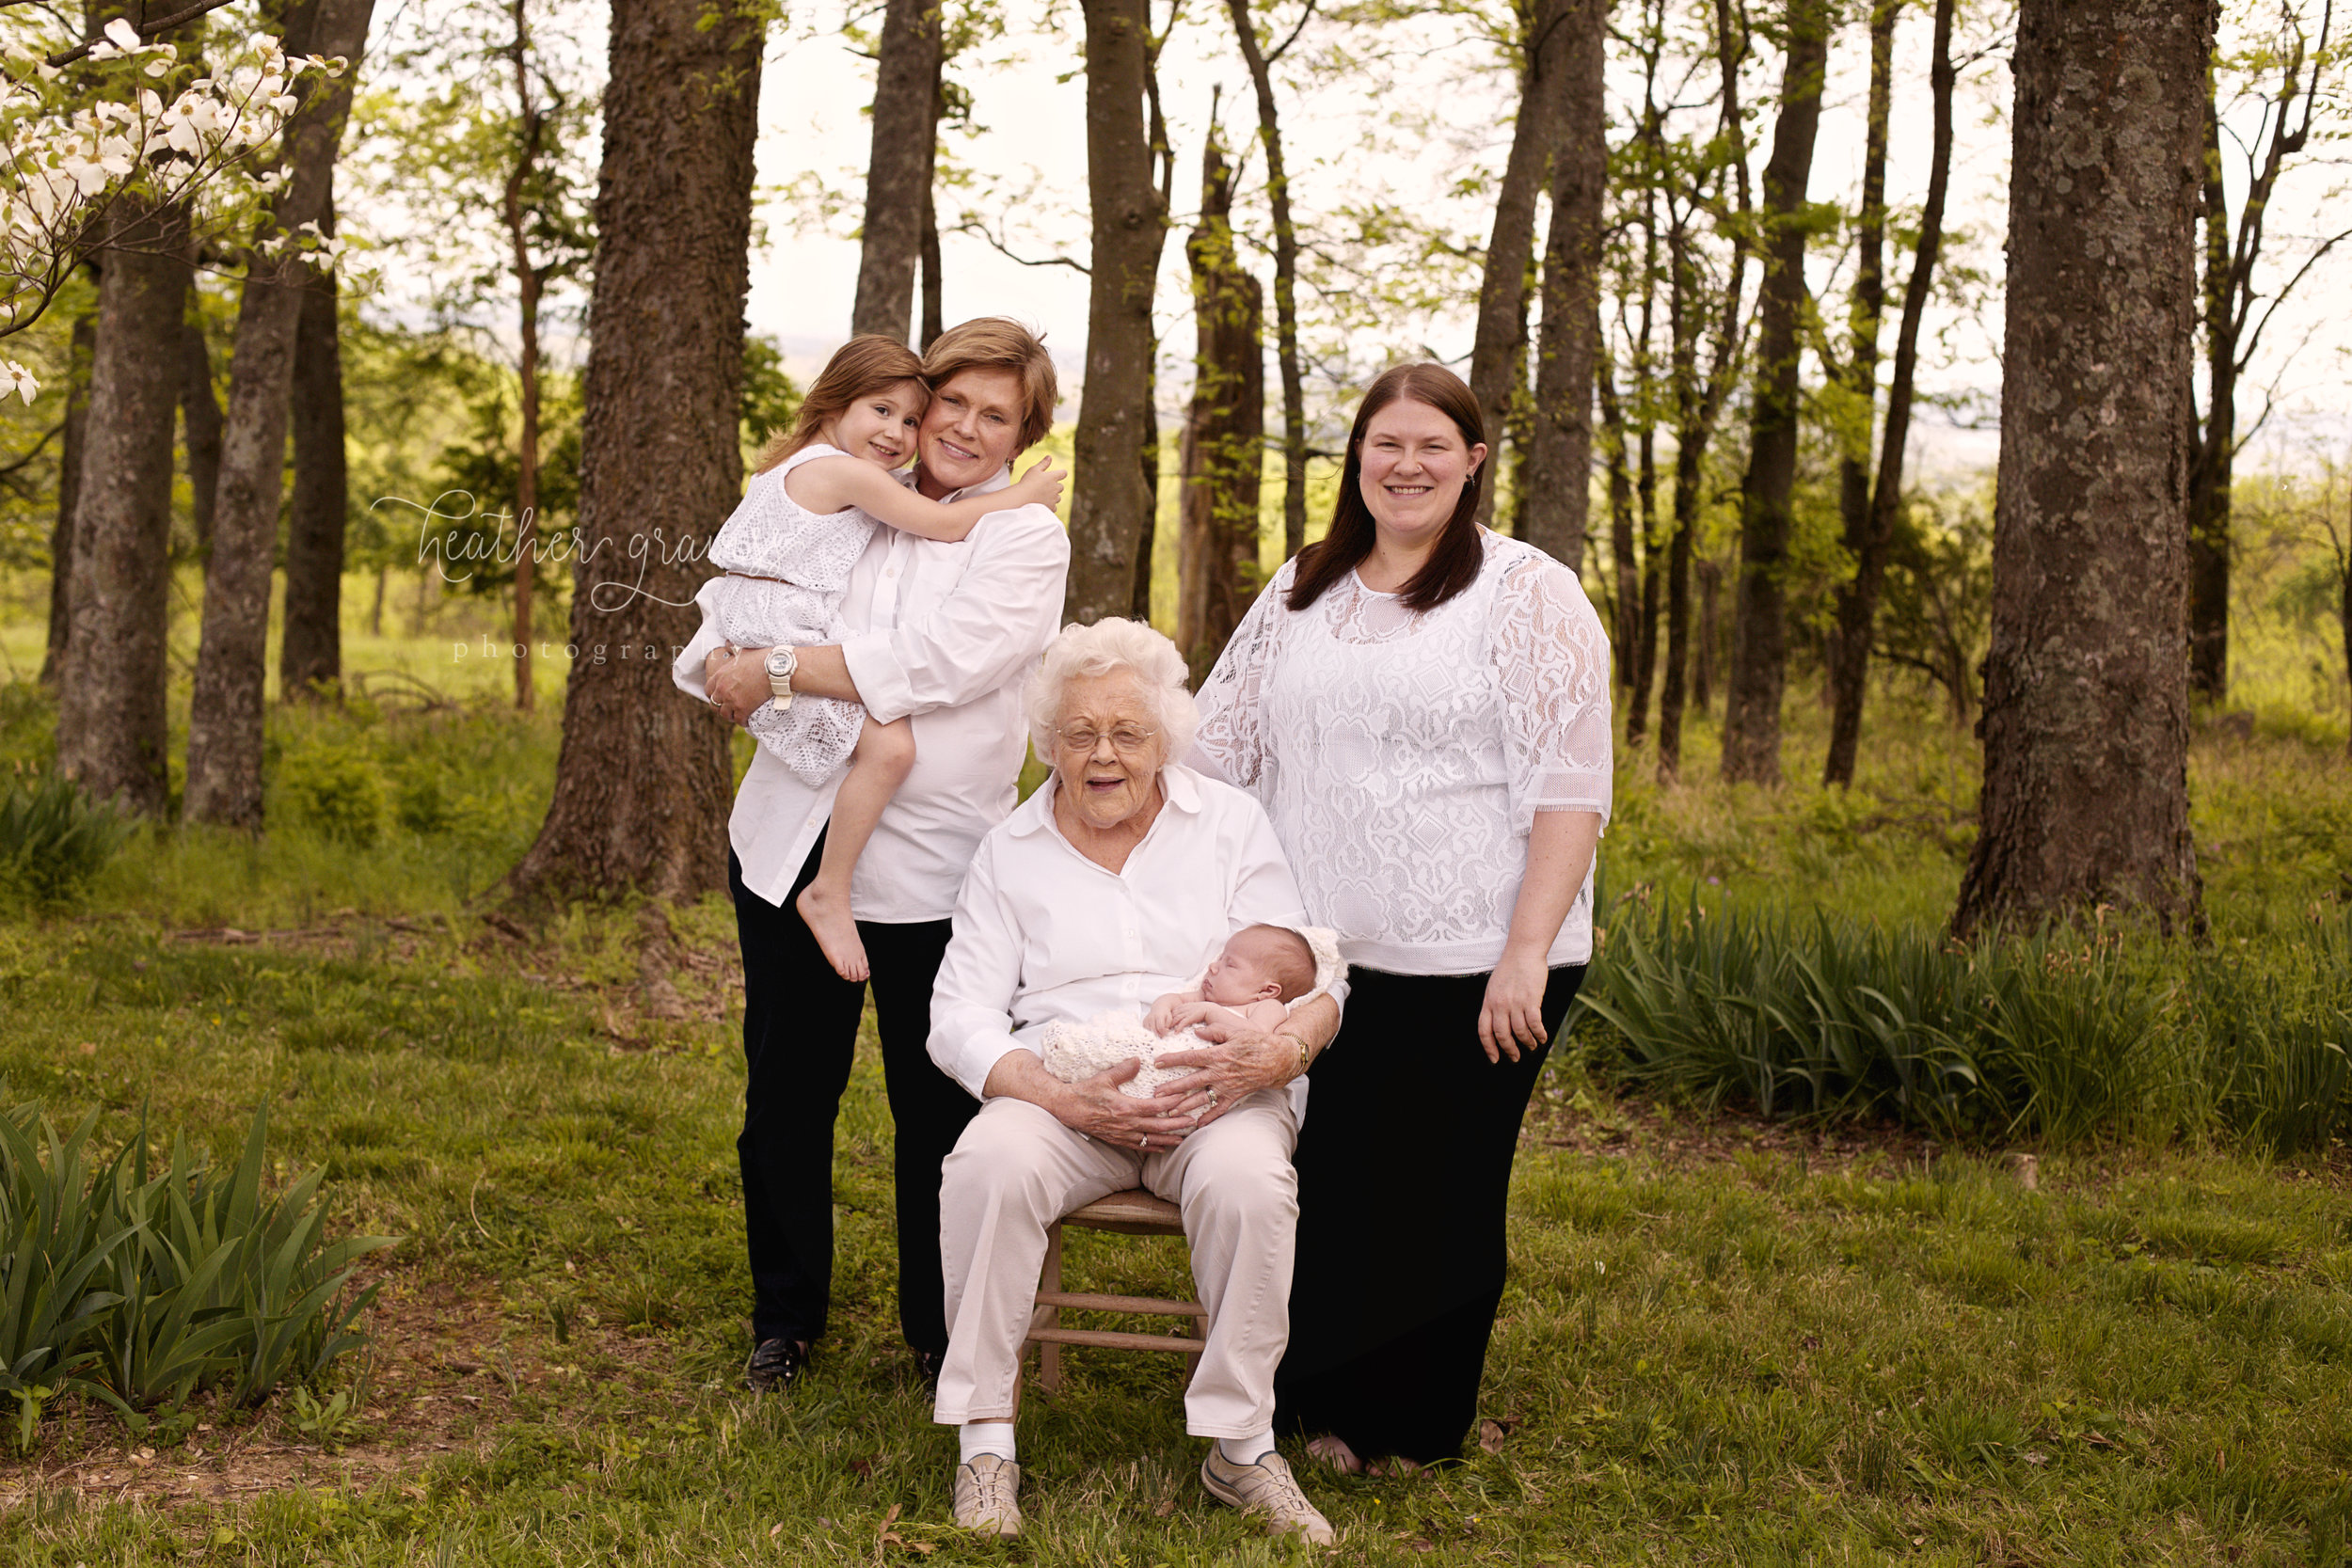 nashville middle tn family photography15.jpg